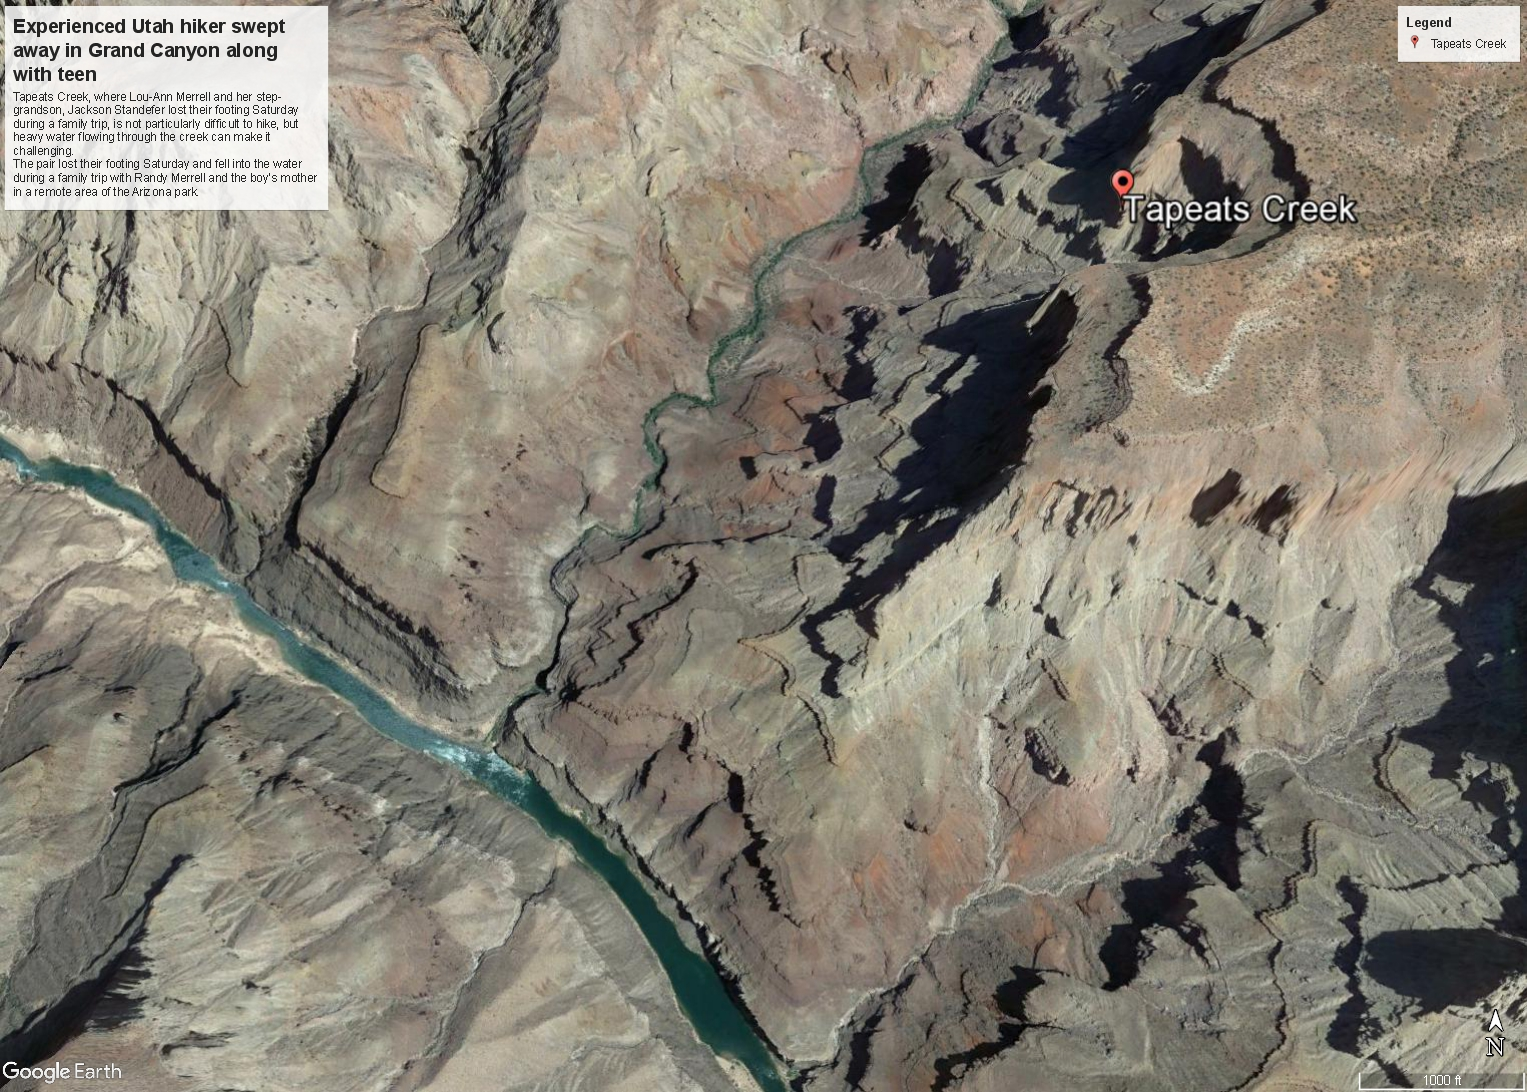 Merrell footwear founder's wife, step-grandson still missing in Grand Canyon. (Photo: Google Earth Pro)